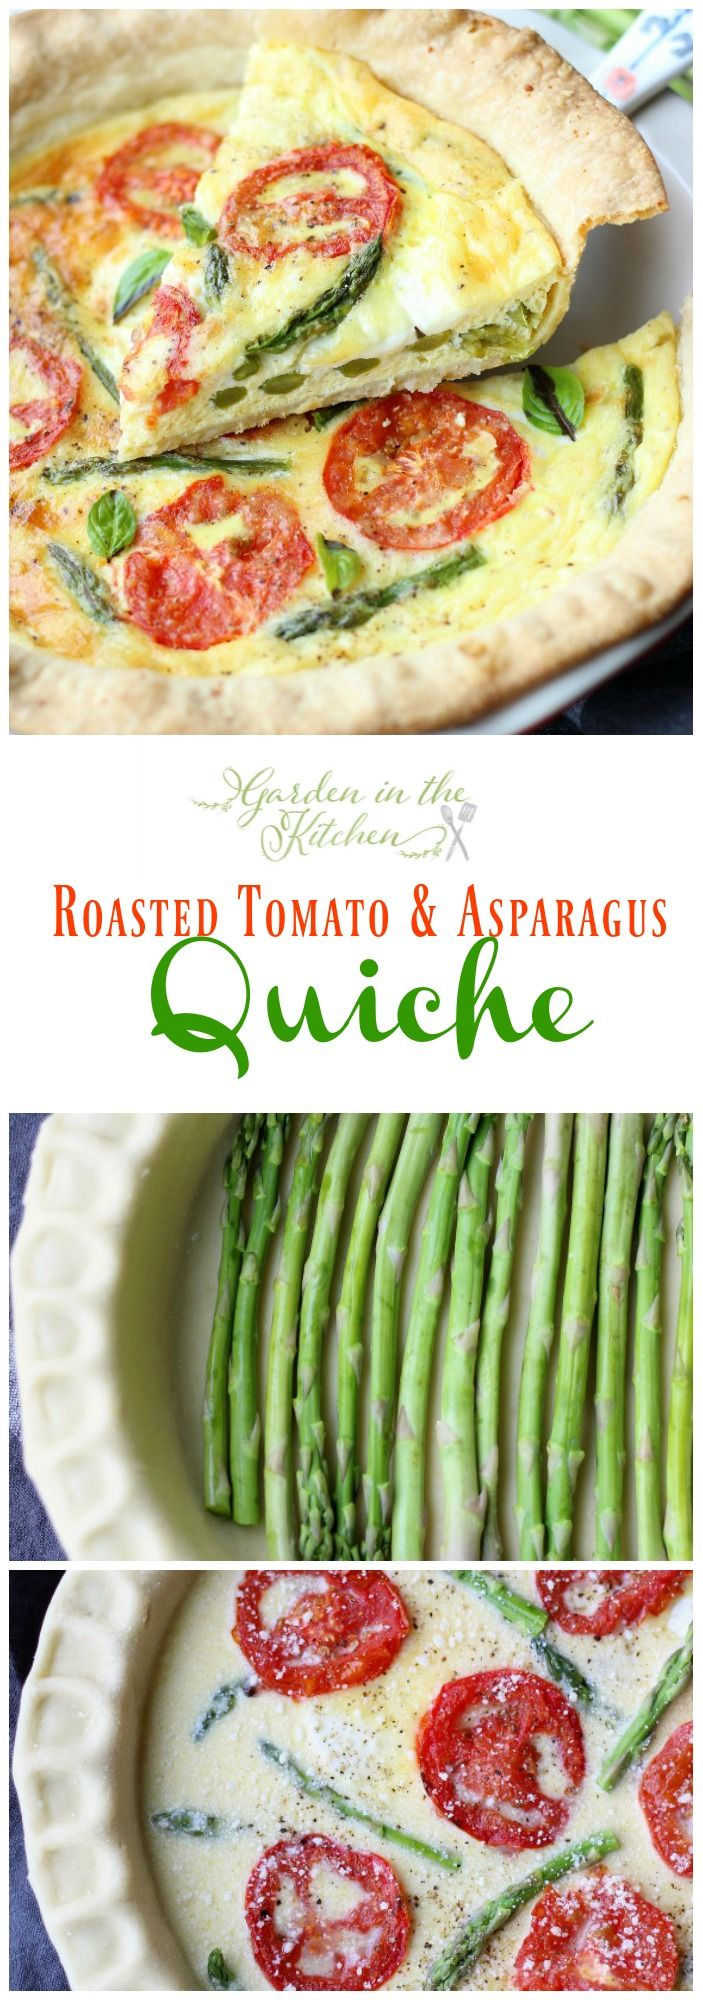 This savory roasted tomato and asparagus quiche has the best flavors of summer. A simple and easy dish you can make for breakfast, lunch or dinner! gardeninthekitchen.com